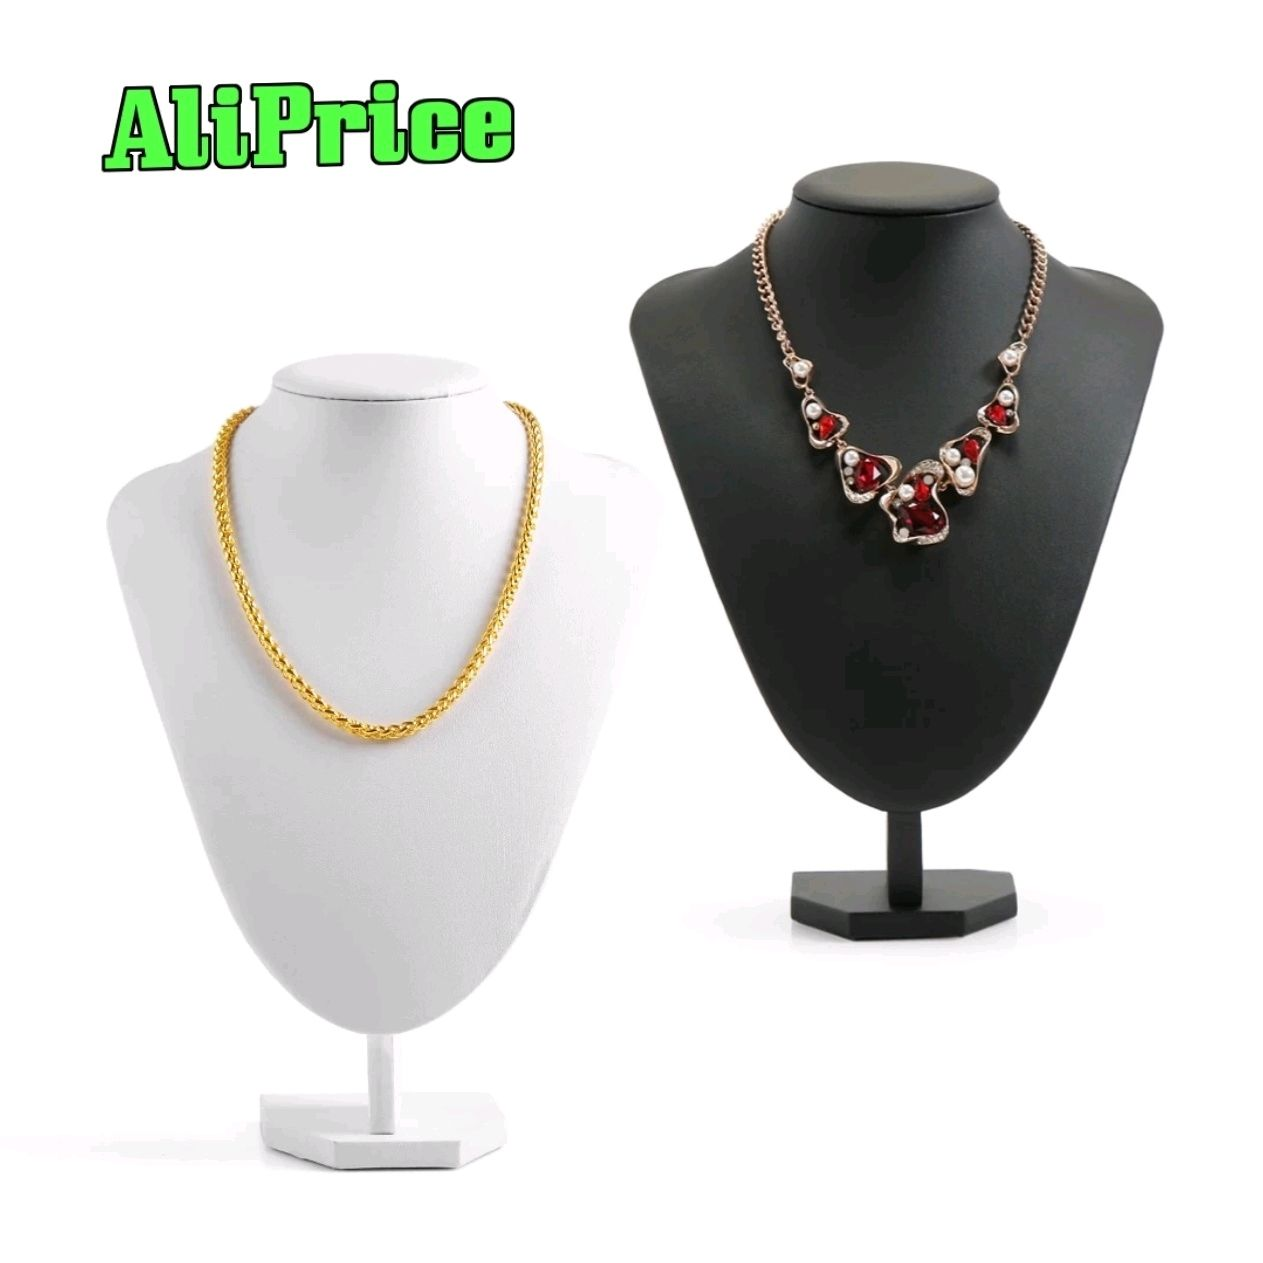 handmade. Livemaster - handmade. Buy Bust for jewelry.Stand for jewelry